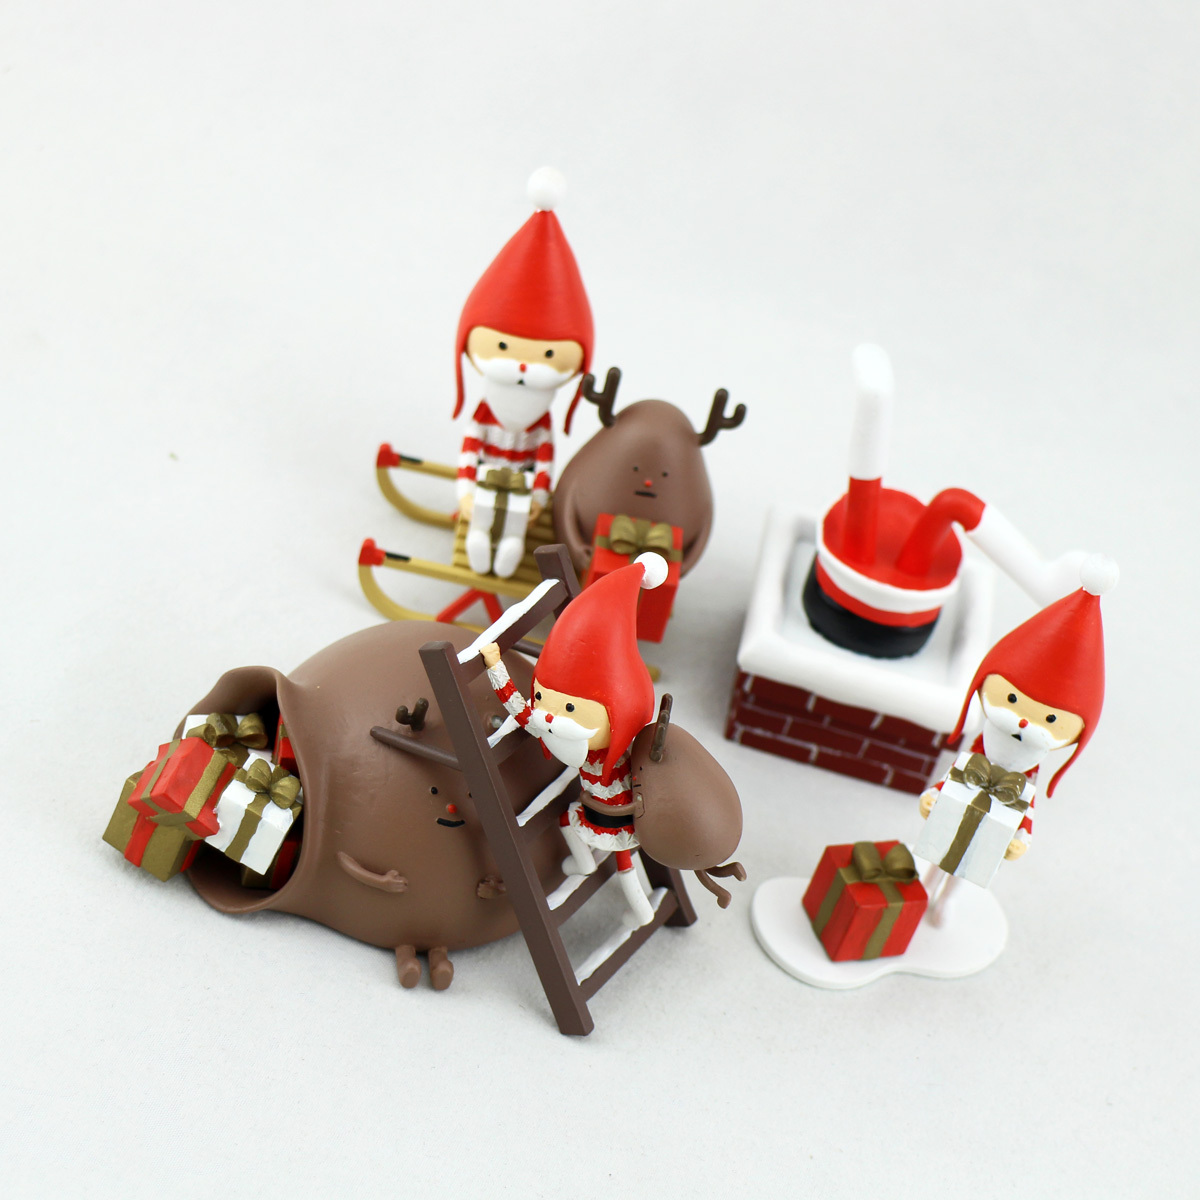 Plastic Christmas Santa Figurines & Promotion Gifts